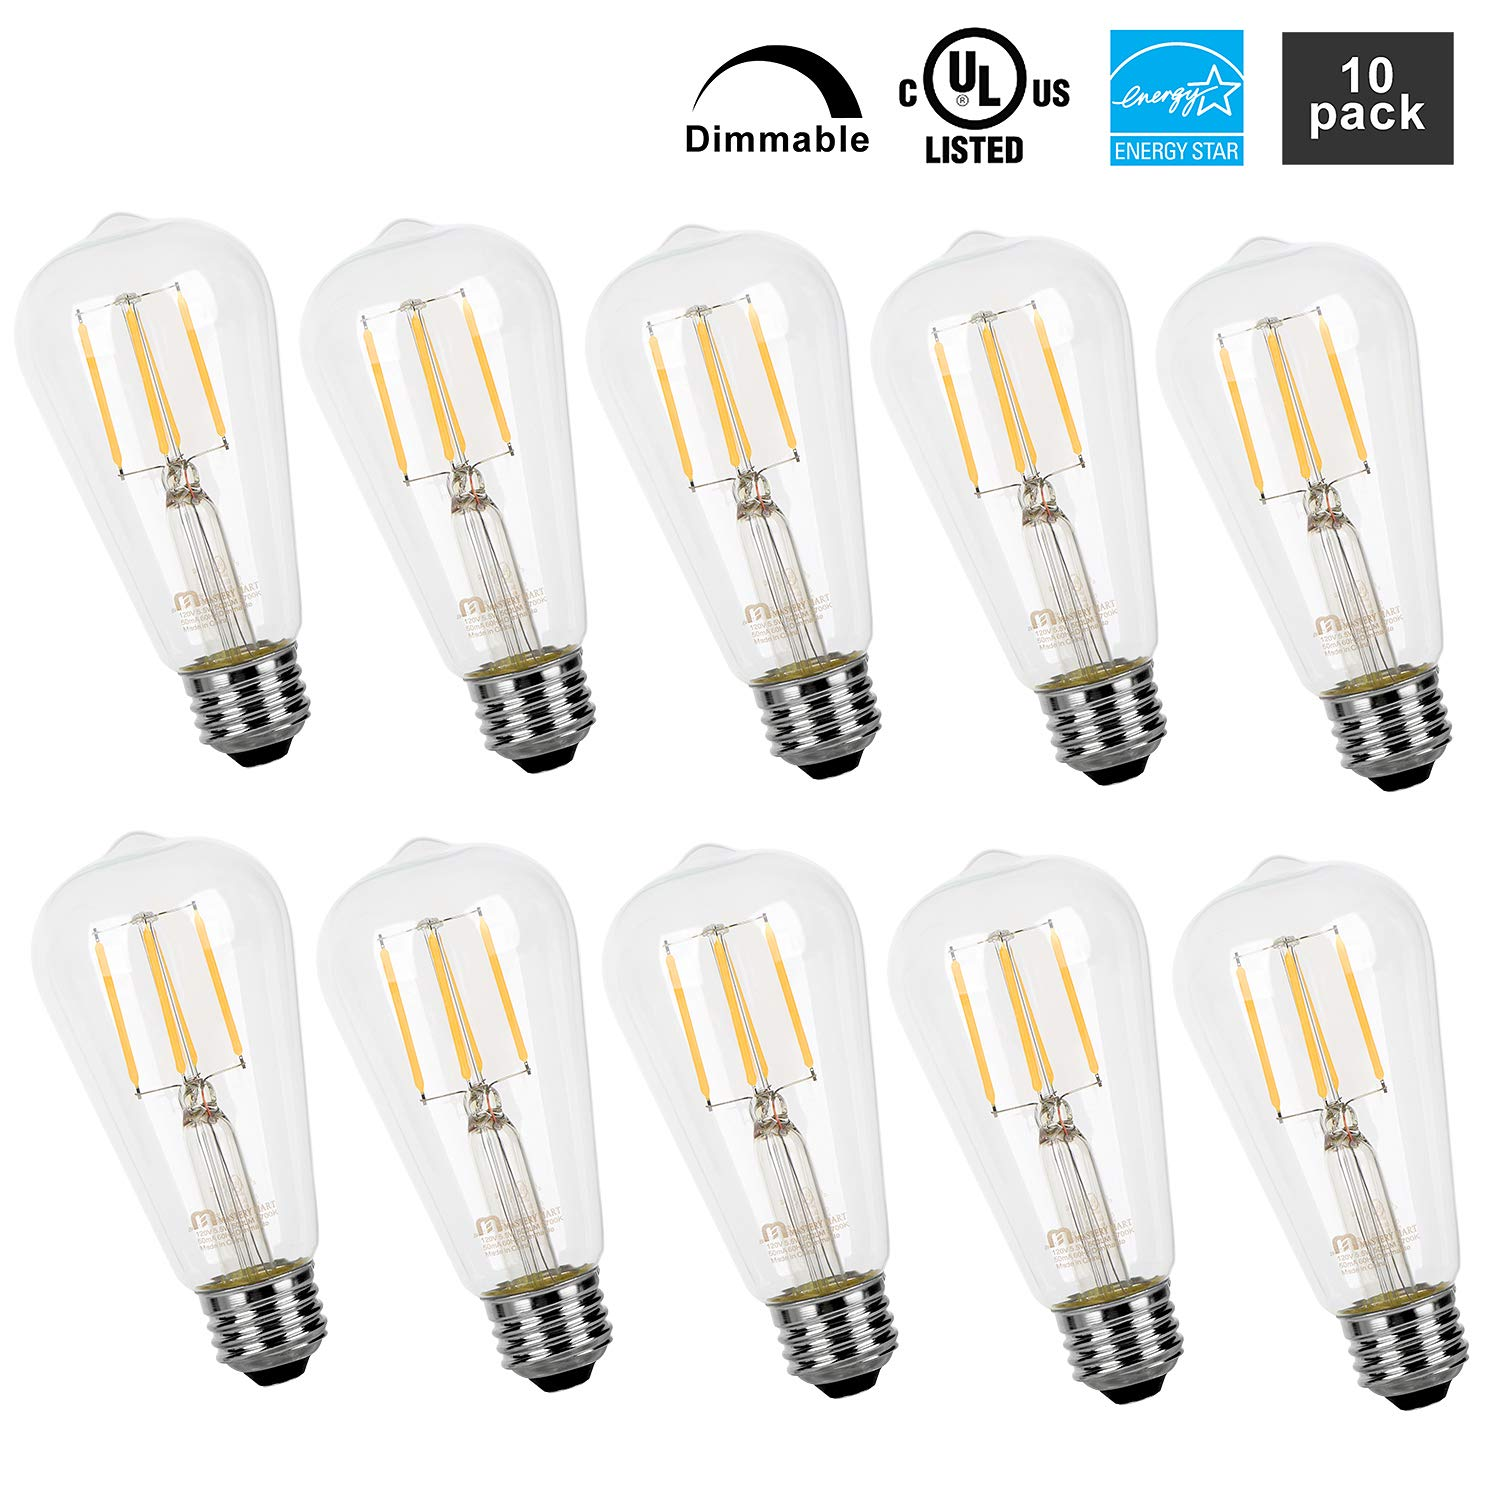 Mastery Mart Vintage LED Light Bulb, Clear Glass ST21 Antique Edison Bulb, Dimmable 5.5W (60W Equivalent), 500LM 2700K Soft White, E26 Base Decorative Filament Bulbs, UL and Energy Star, 10 Pack